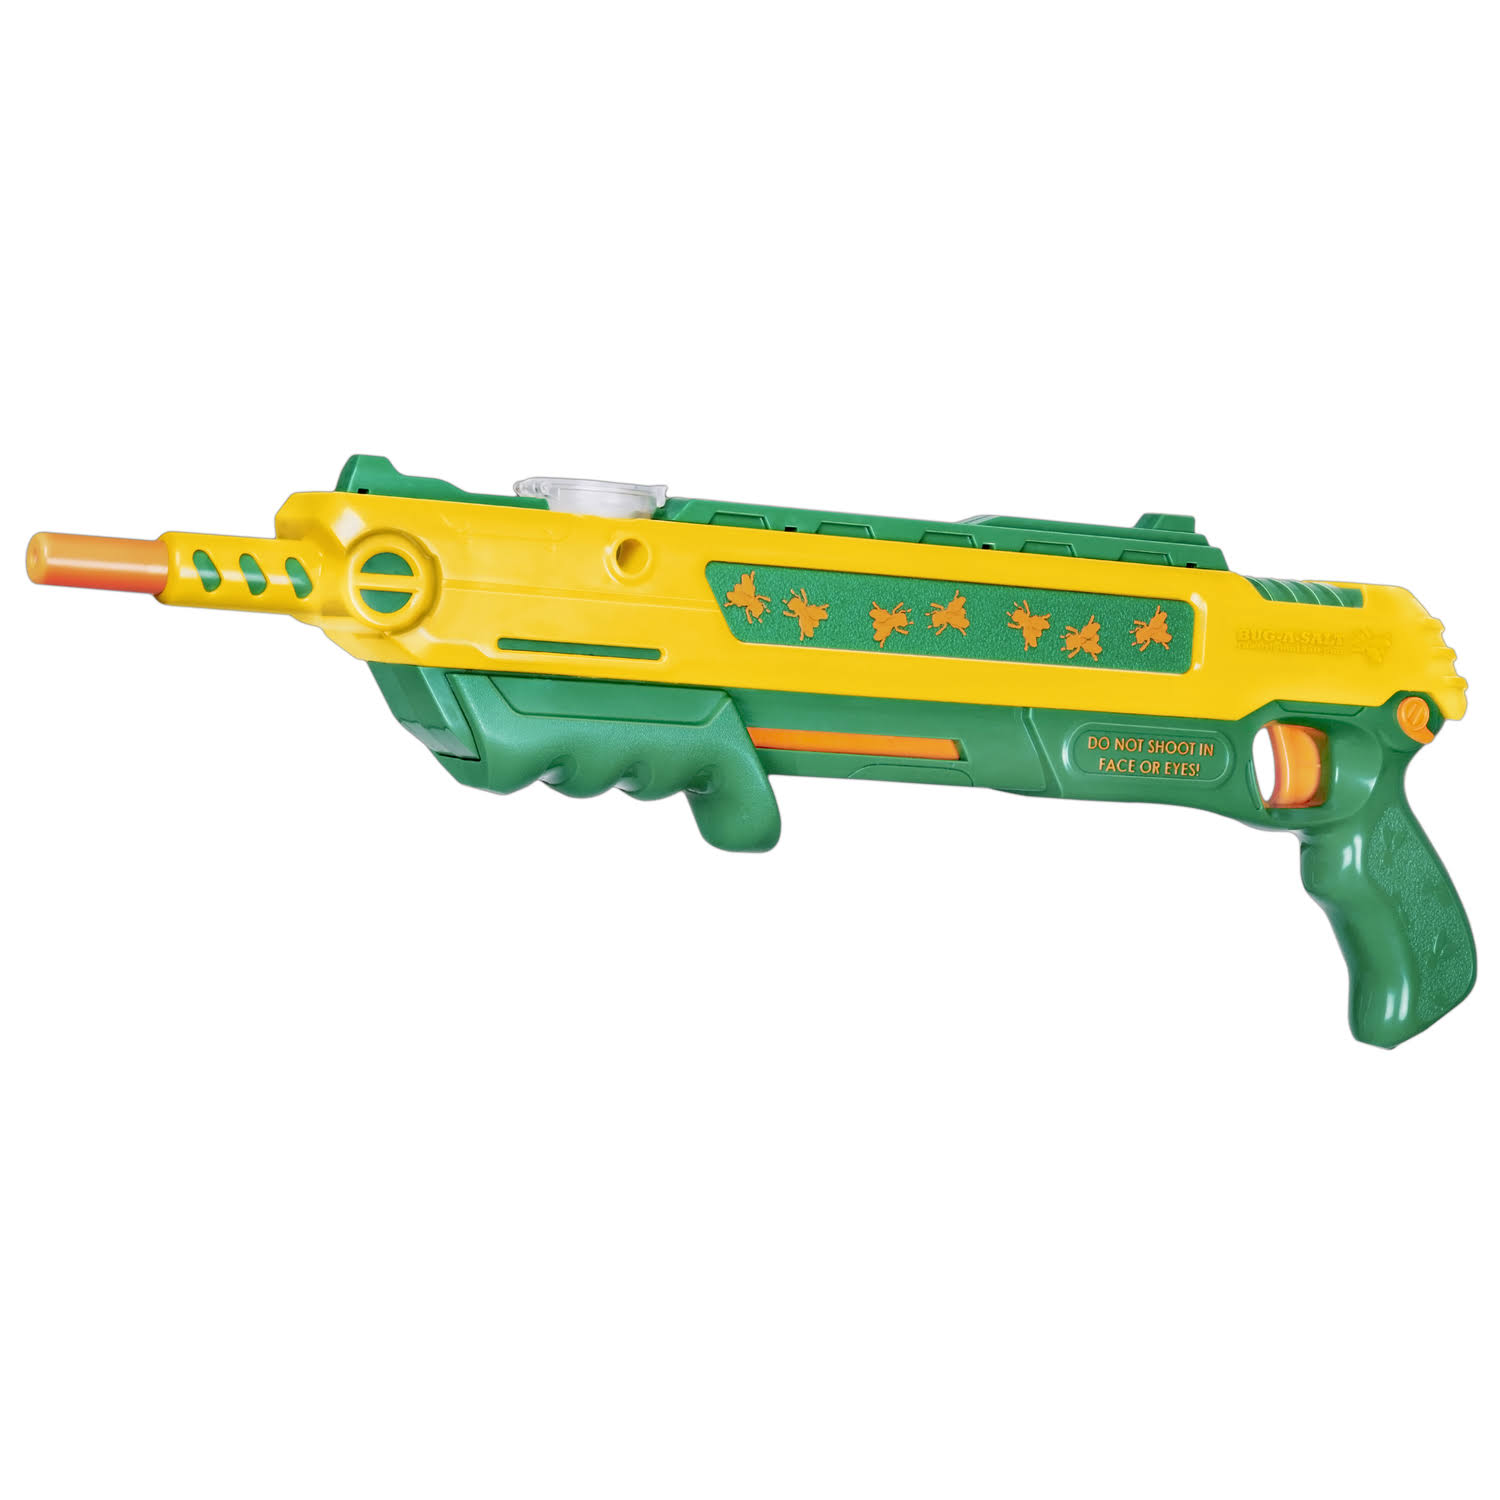 Bug-A-Salt Lawn Pest Control Shotgun Spray